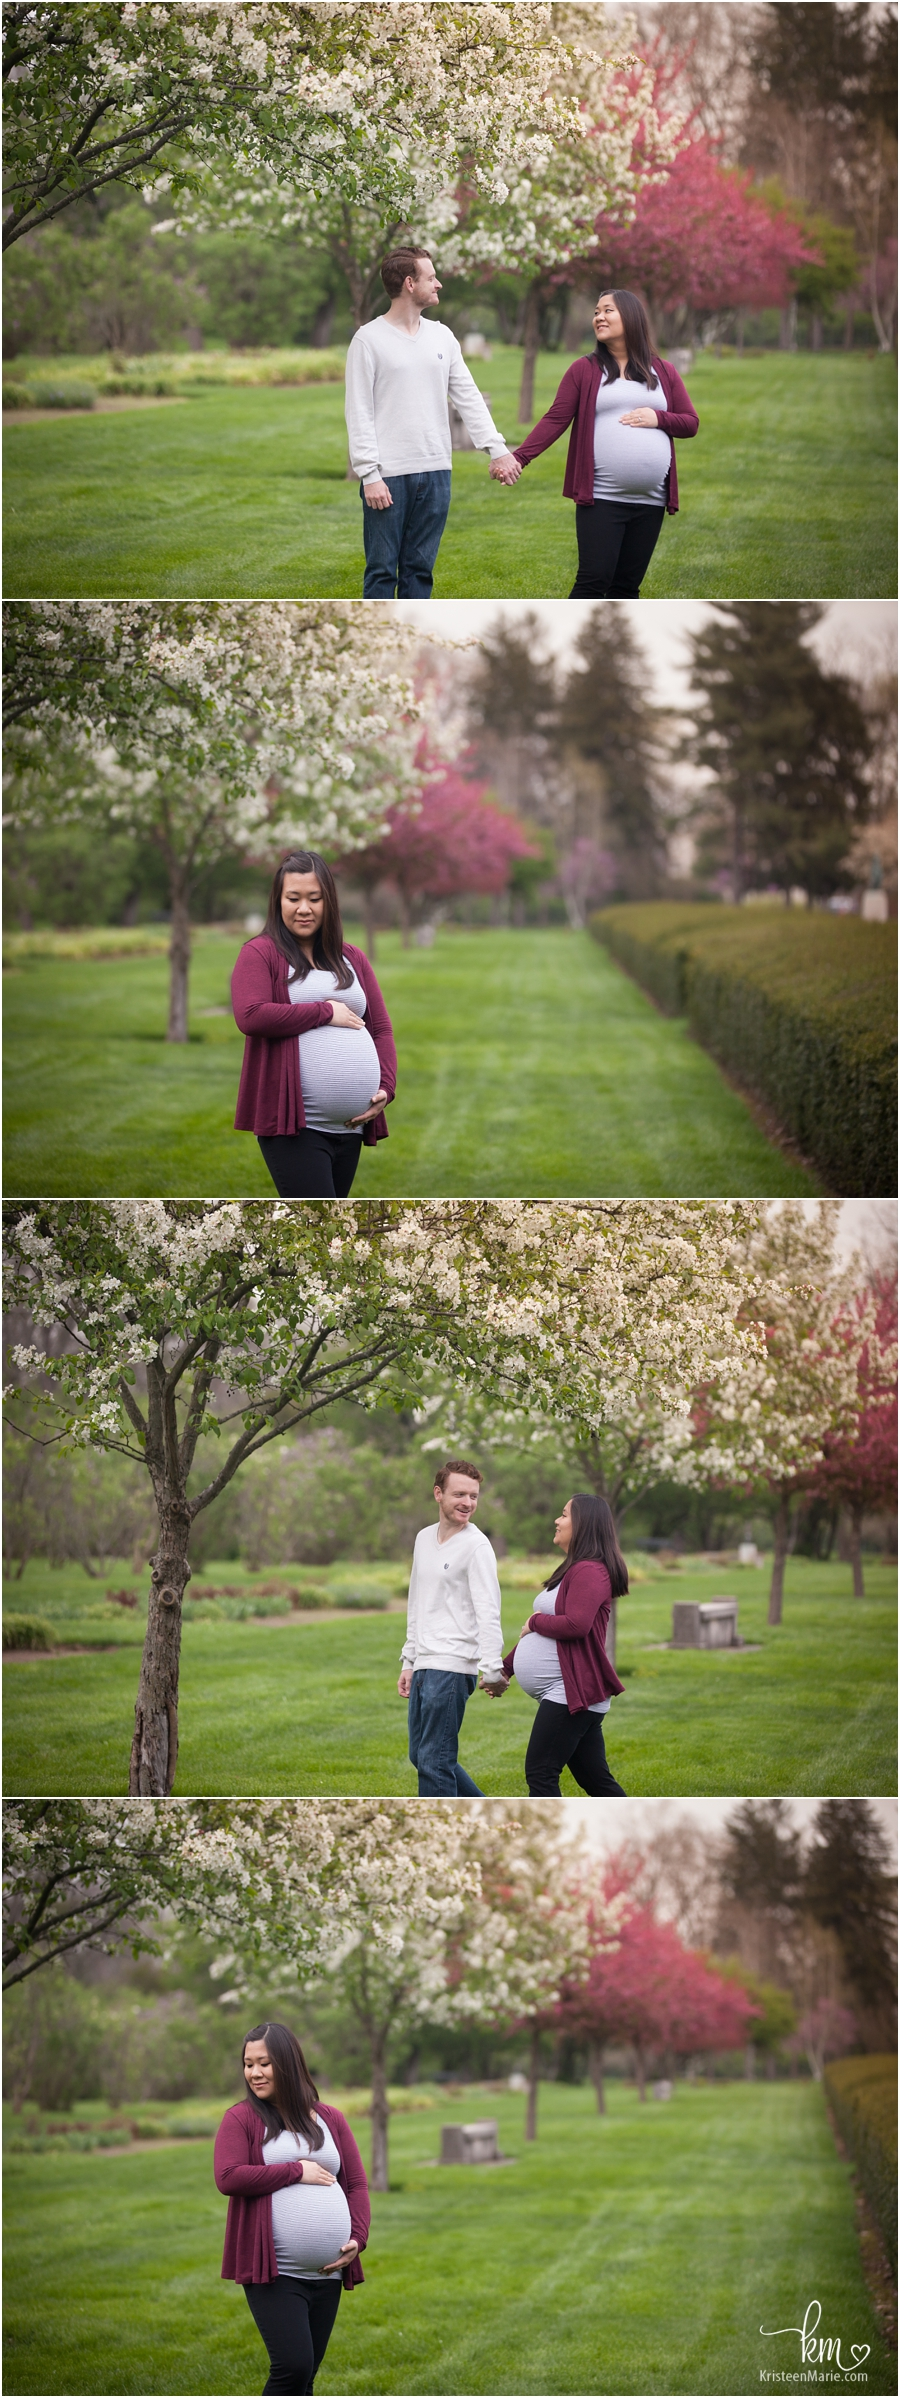 purple and white flowering trees in Indianapolis maternity photography - so pretty!